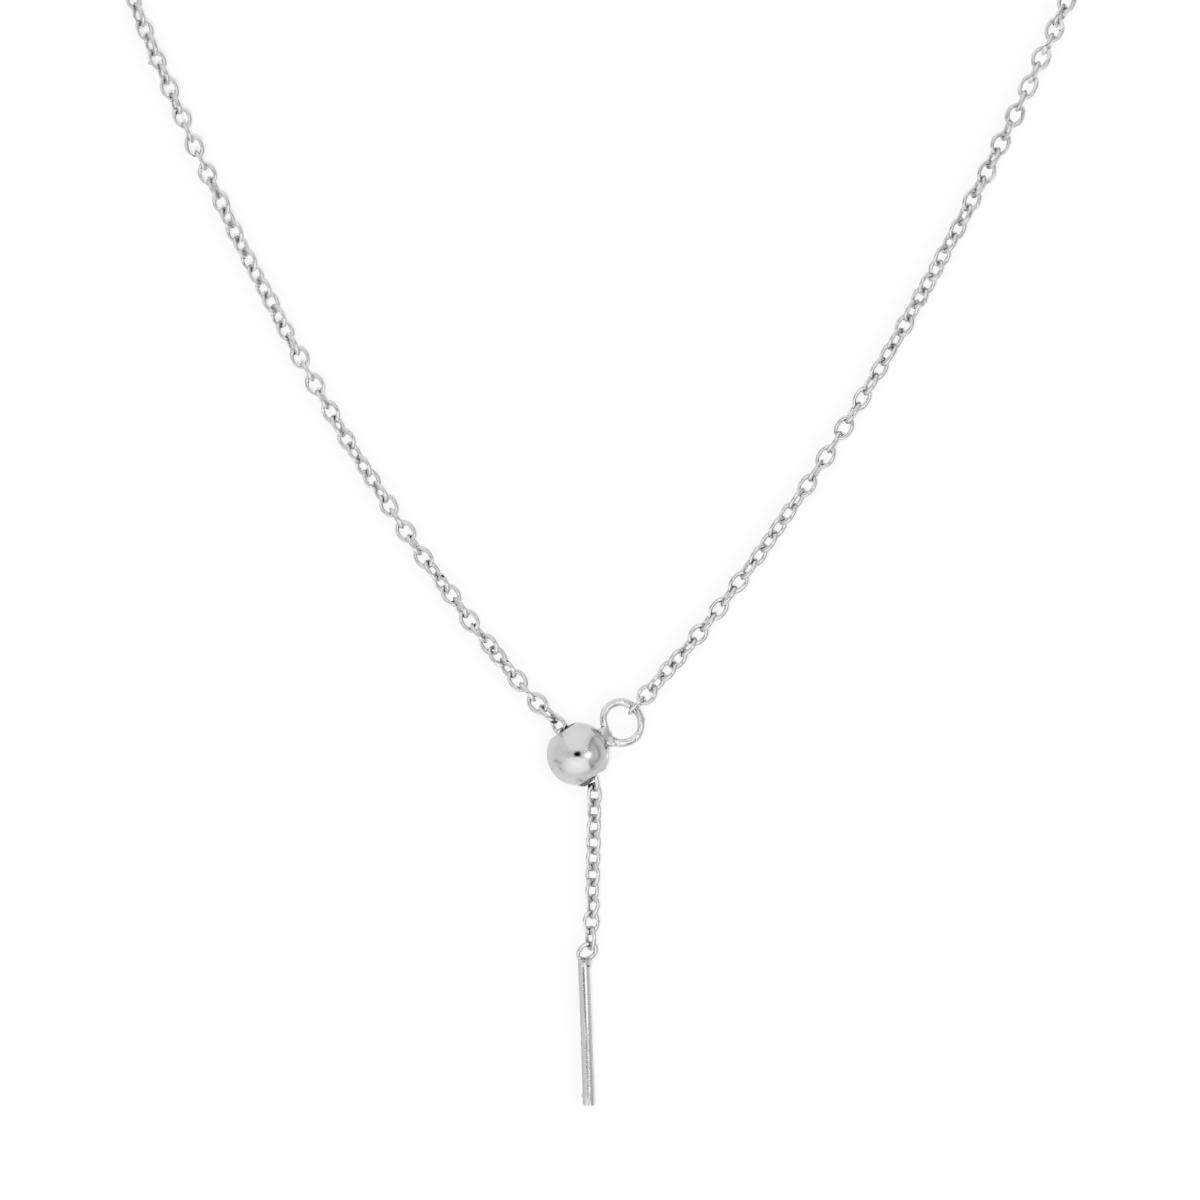 Sterling Silver Adjustable Choker to 20 Inch Belcher Chain Necklace w Bead Slider Clasp